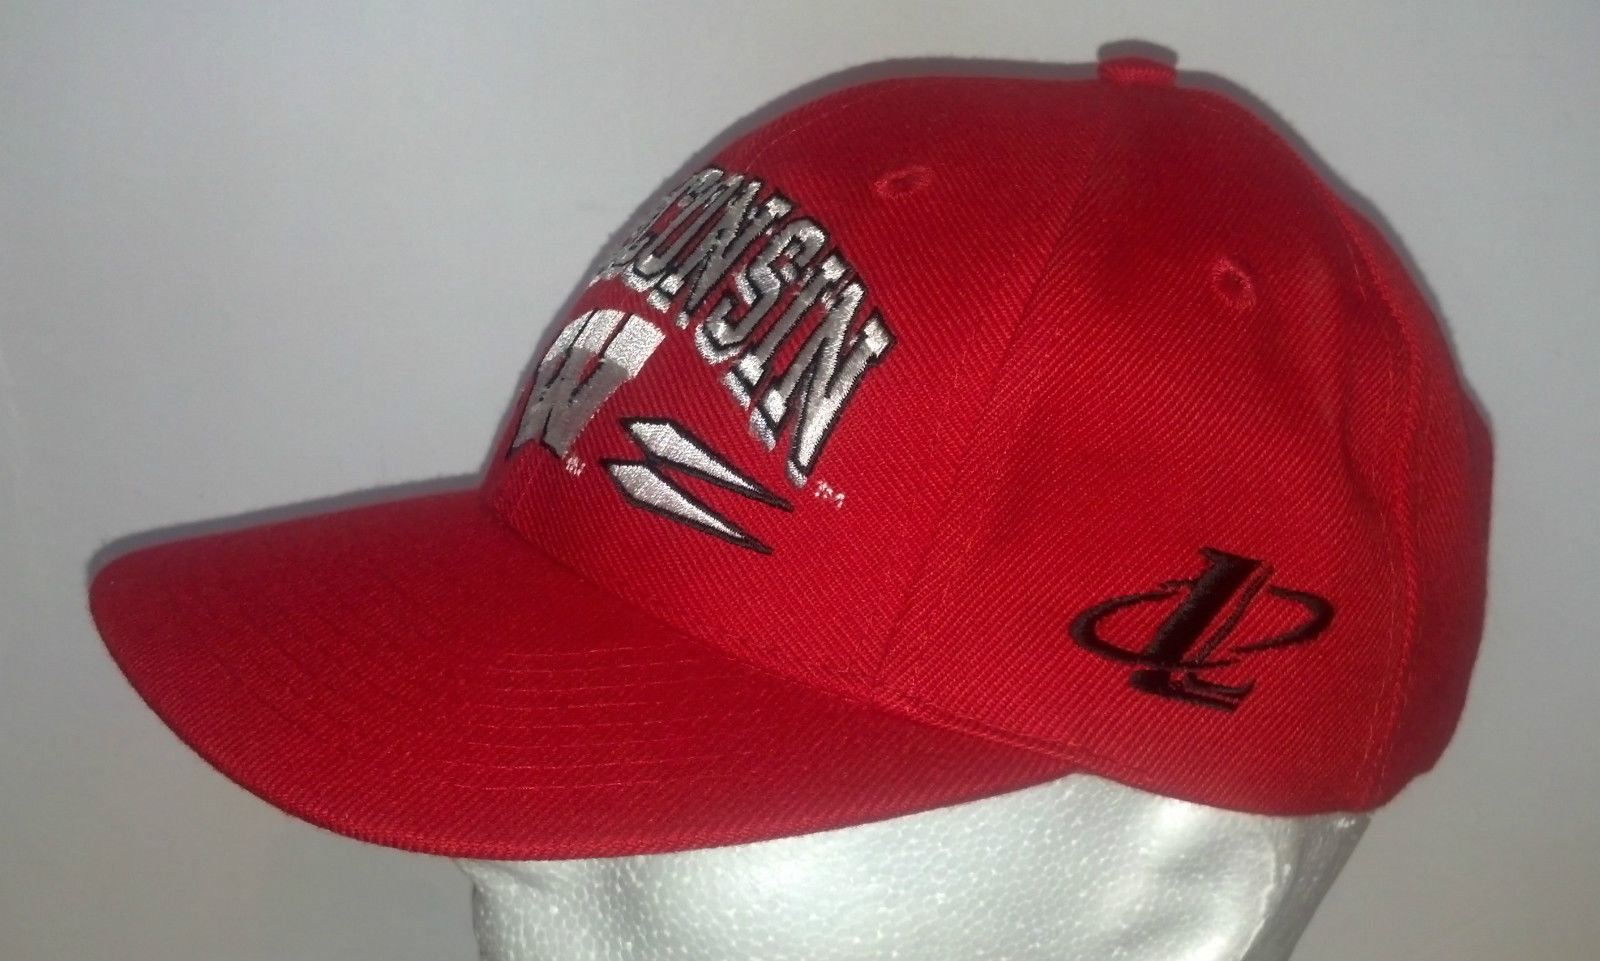 university of wisconsin snap back hat logo athletic red college ncaa